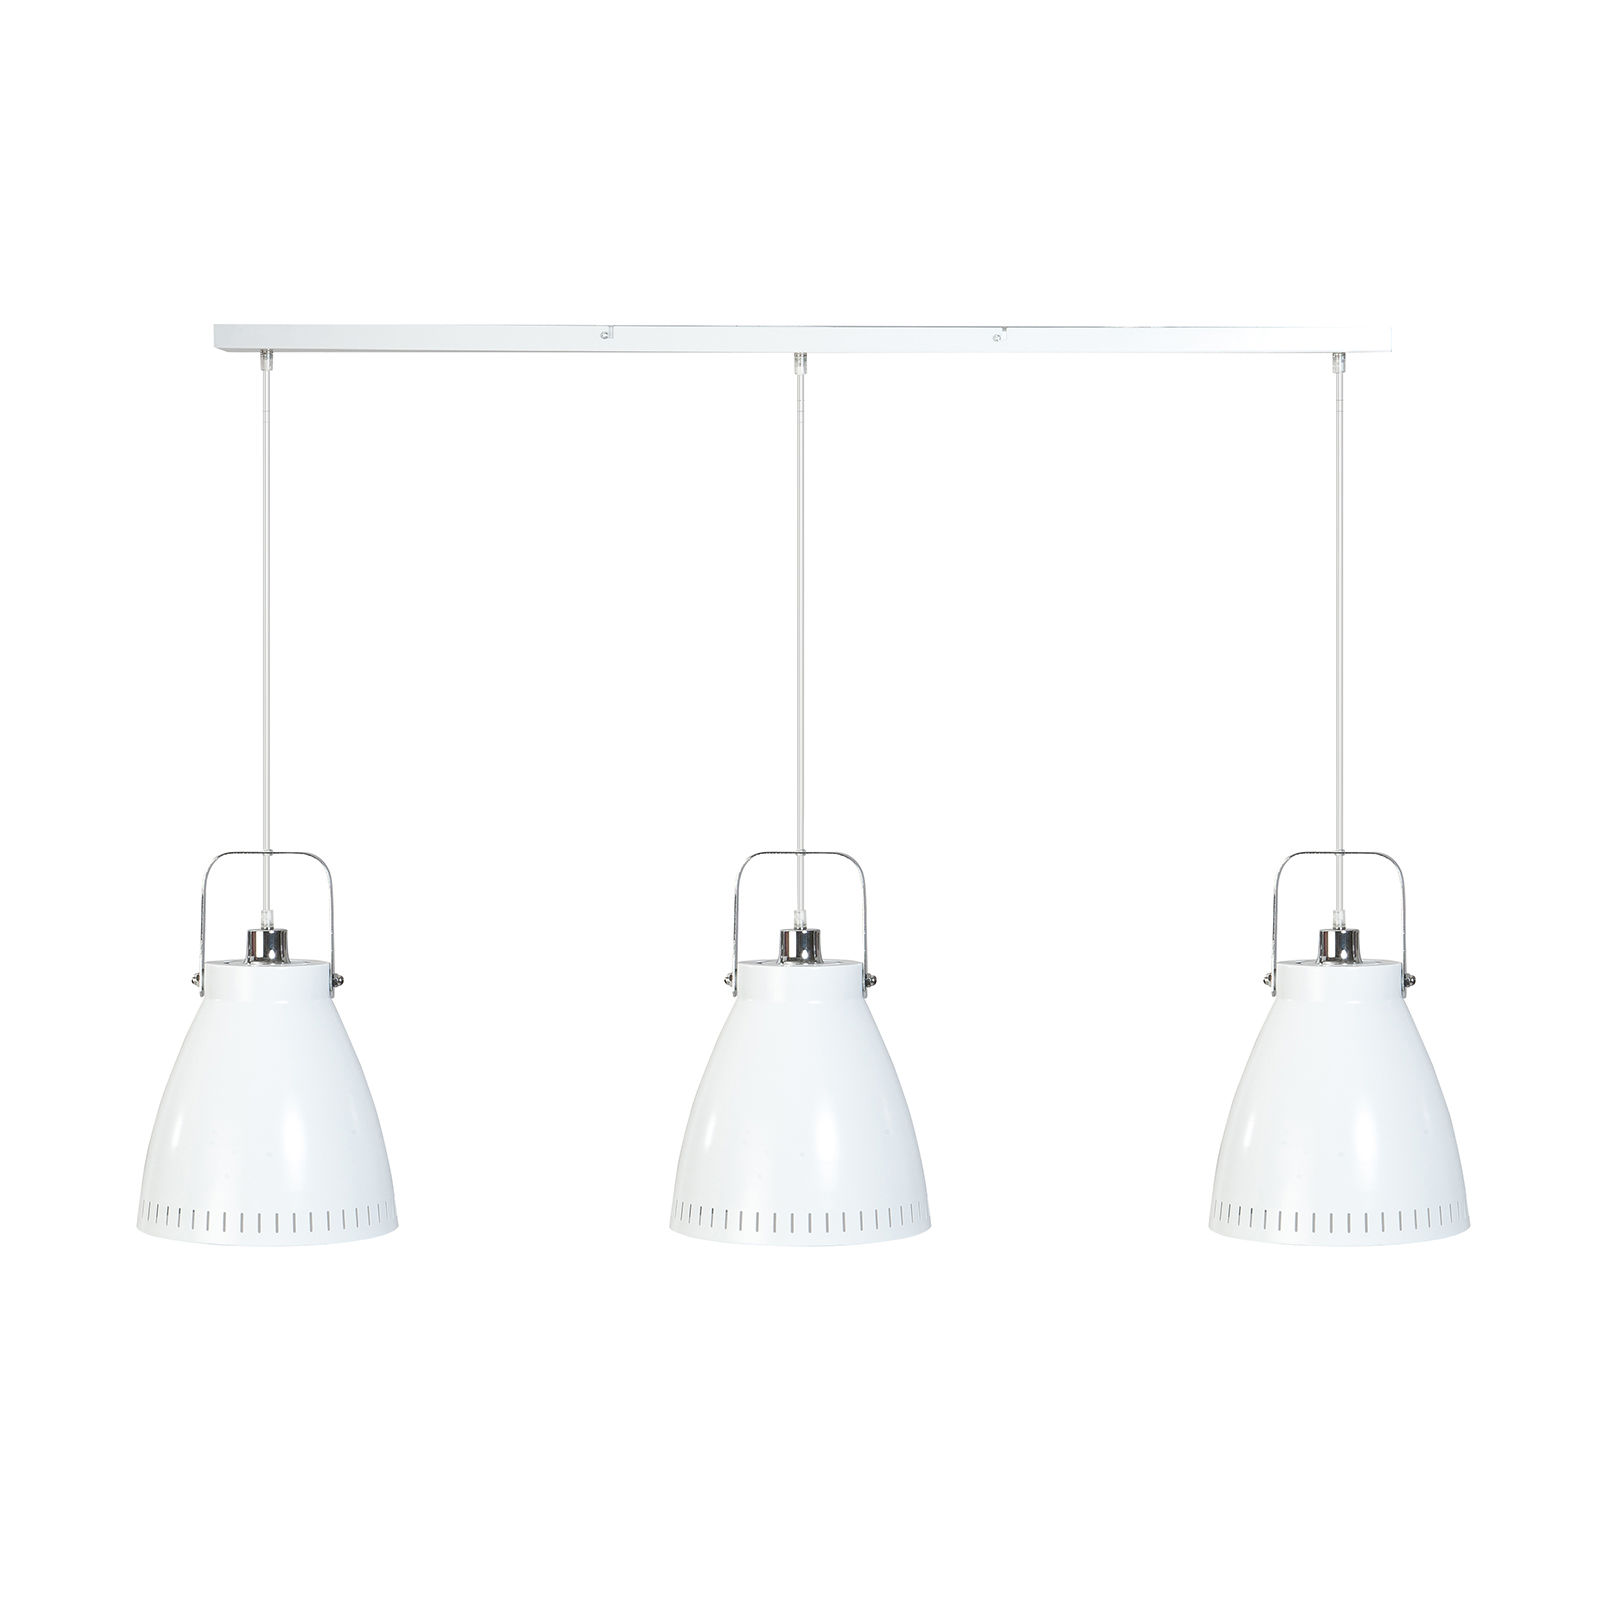 Acate hanglamp ETH chroom - wit